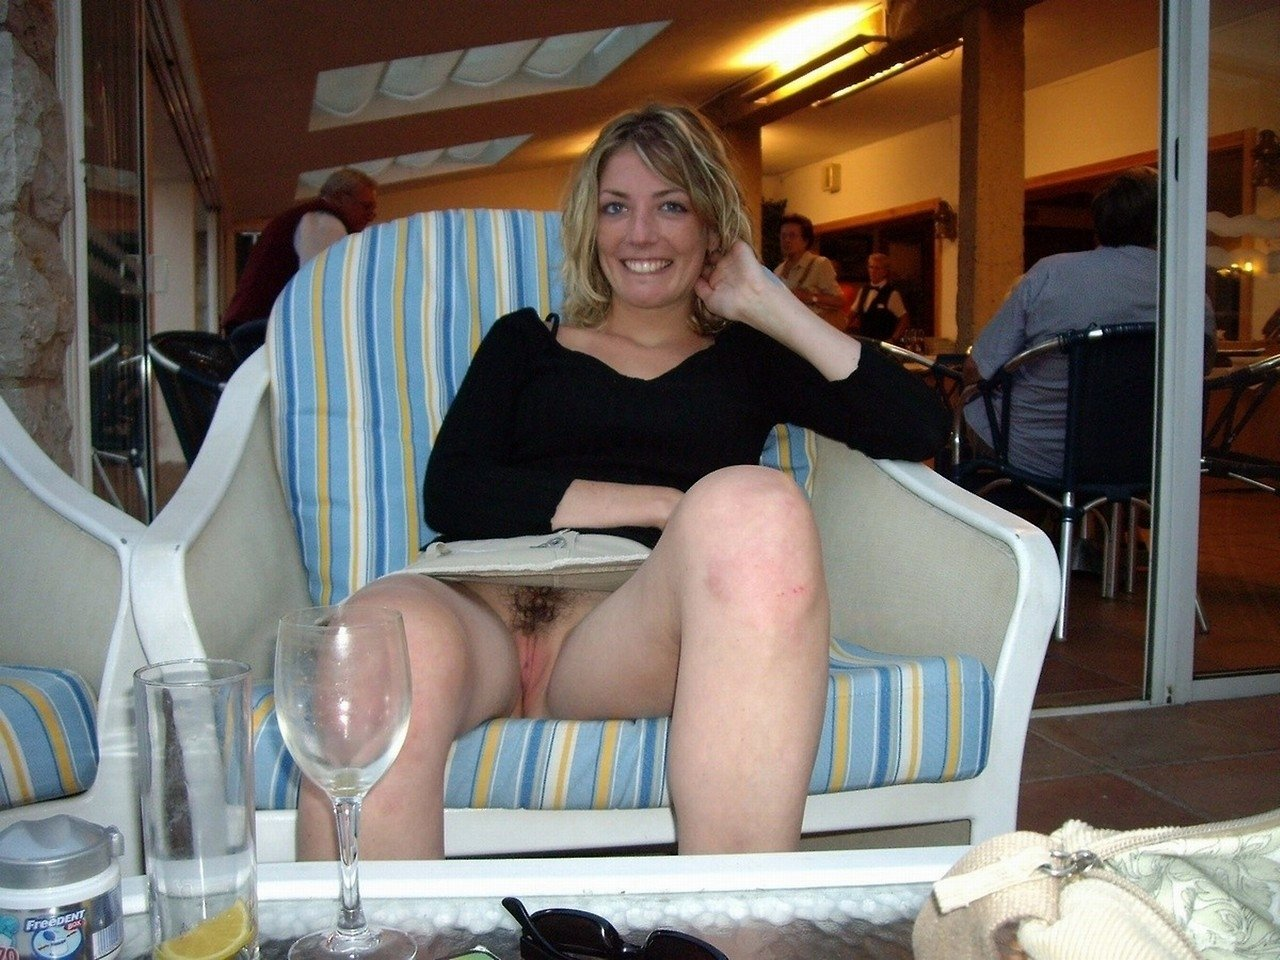 cuckold porn videos tumblr